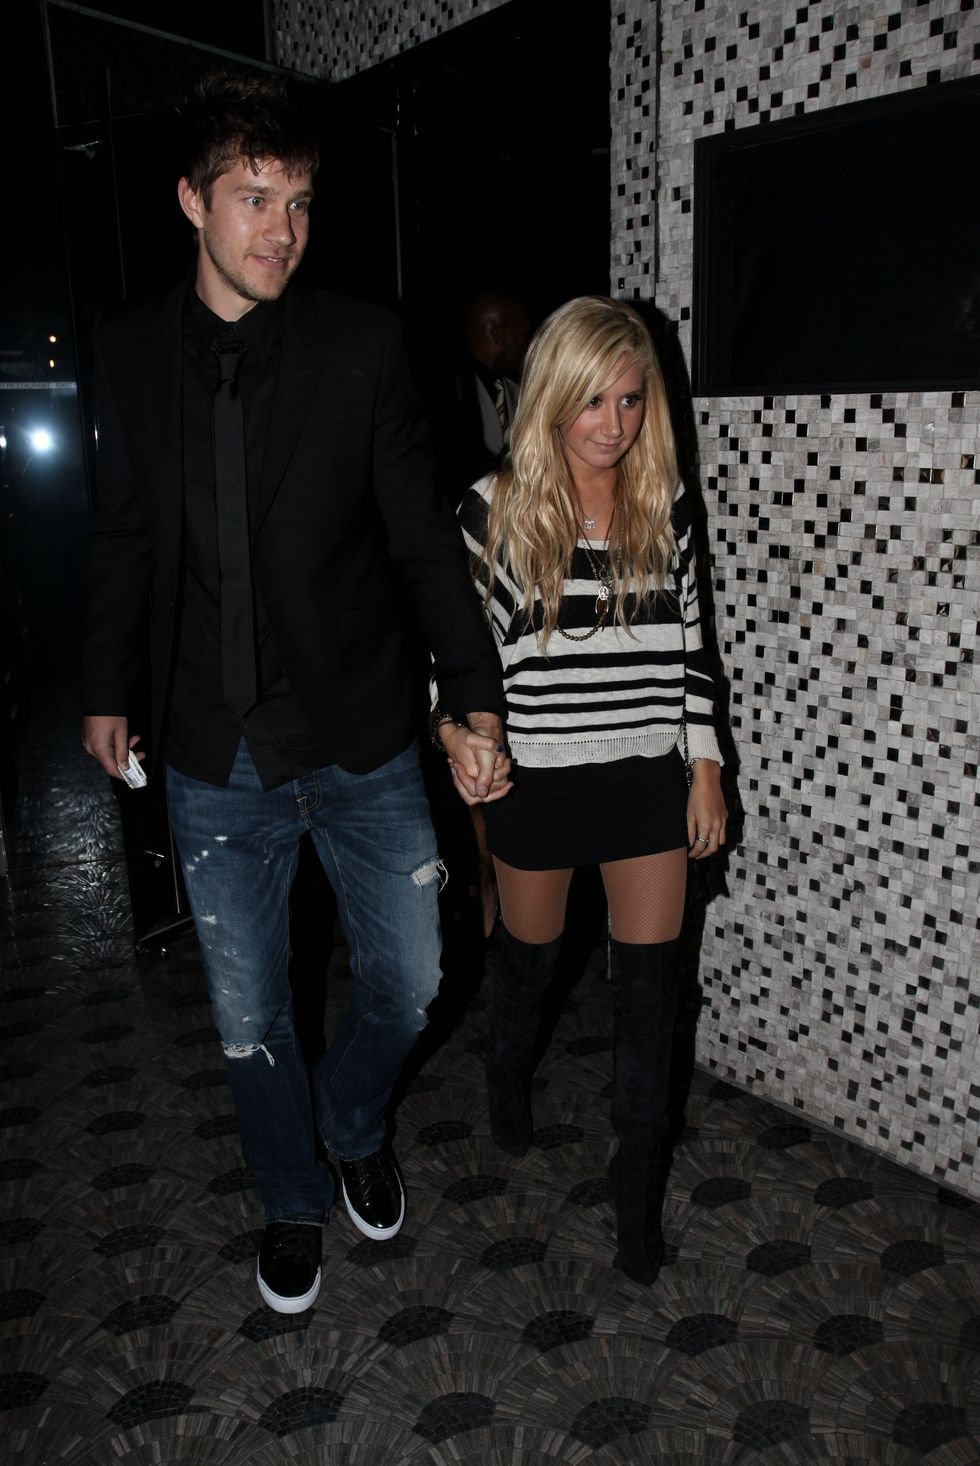 ashley-tisdale-vanessa-hudgens-21th-birthday-party-in-hollywood-01